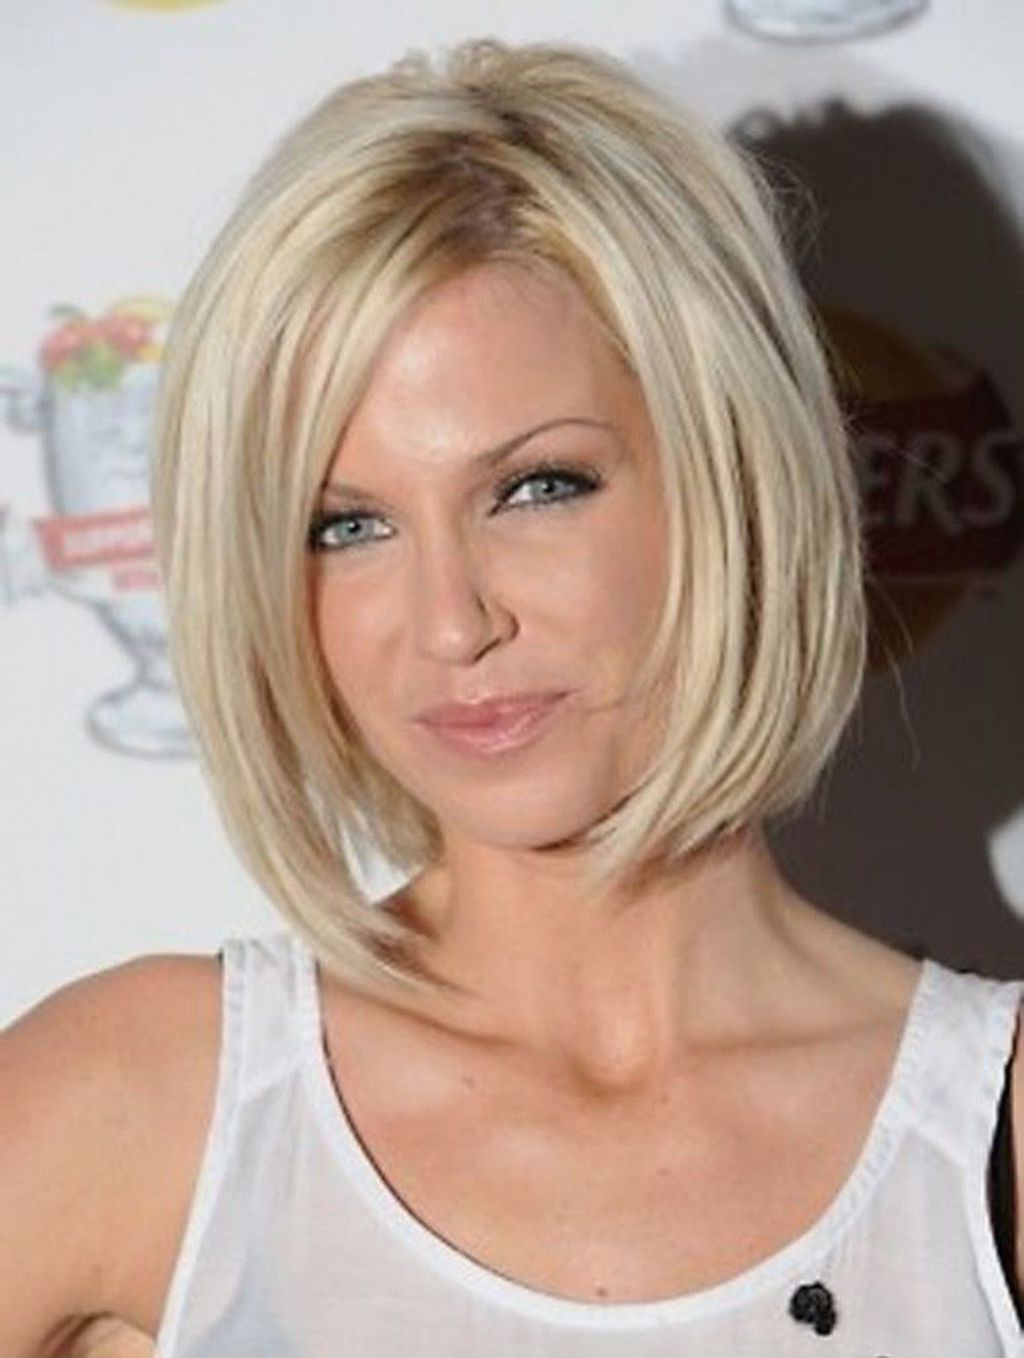 ? 24+ Lovely Short Shoulder Length Hairstyles: Astonishing Short Intended For Short Shoulder Length Hairstyles For Women (View 24 of 25)